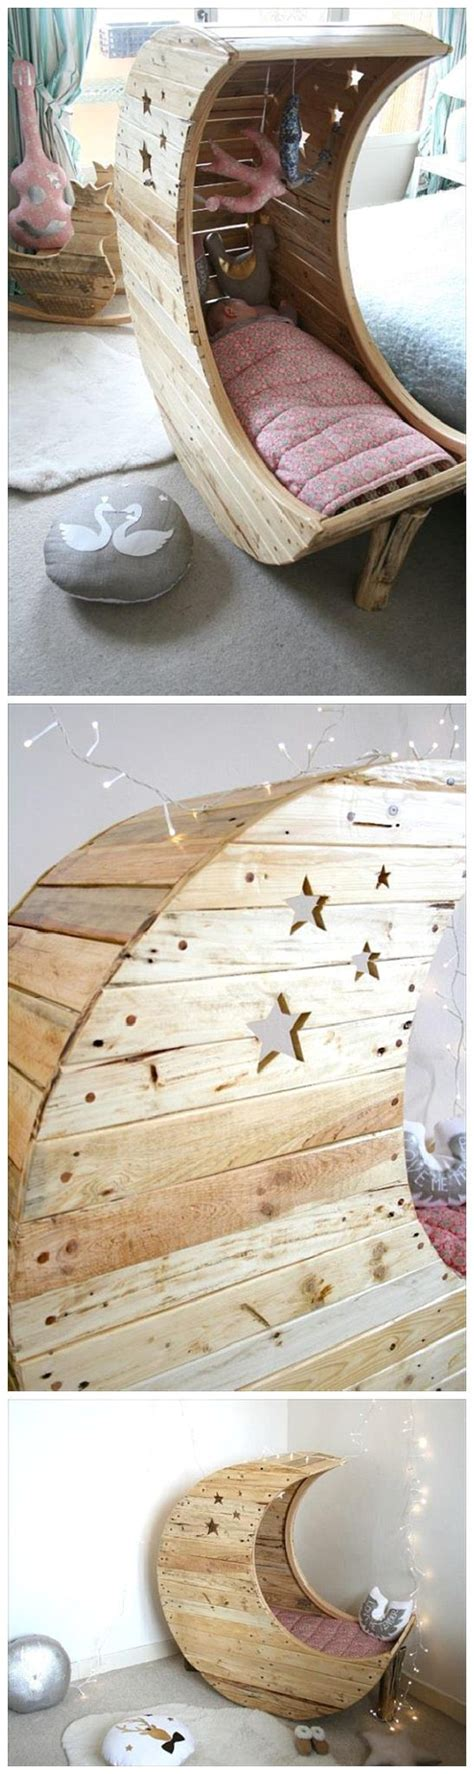 Diy Moon Shaped Cradle 1 - diy pallet projects the best reclaimed wood upcycle ideas